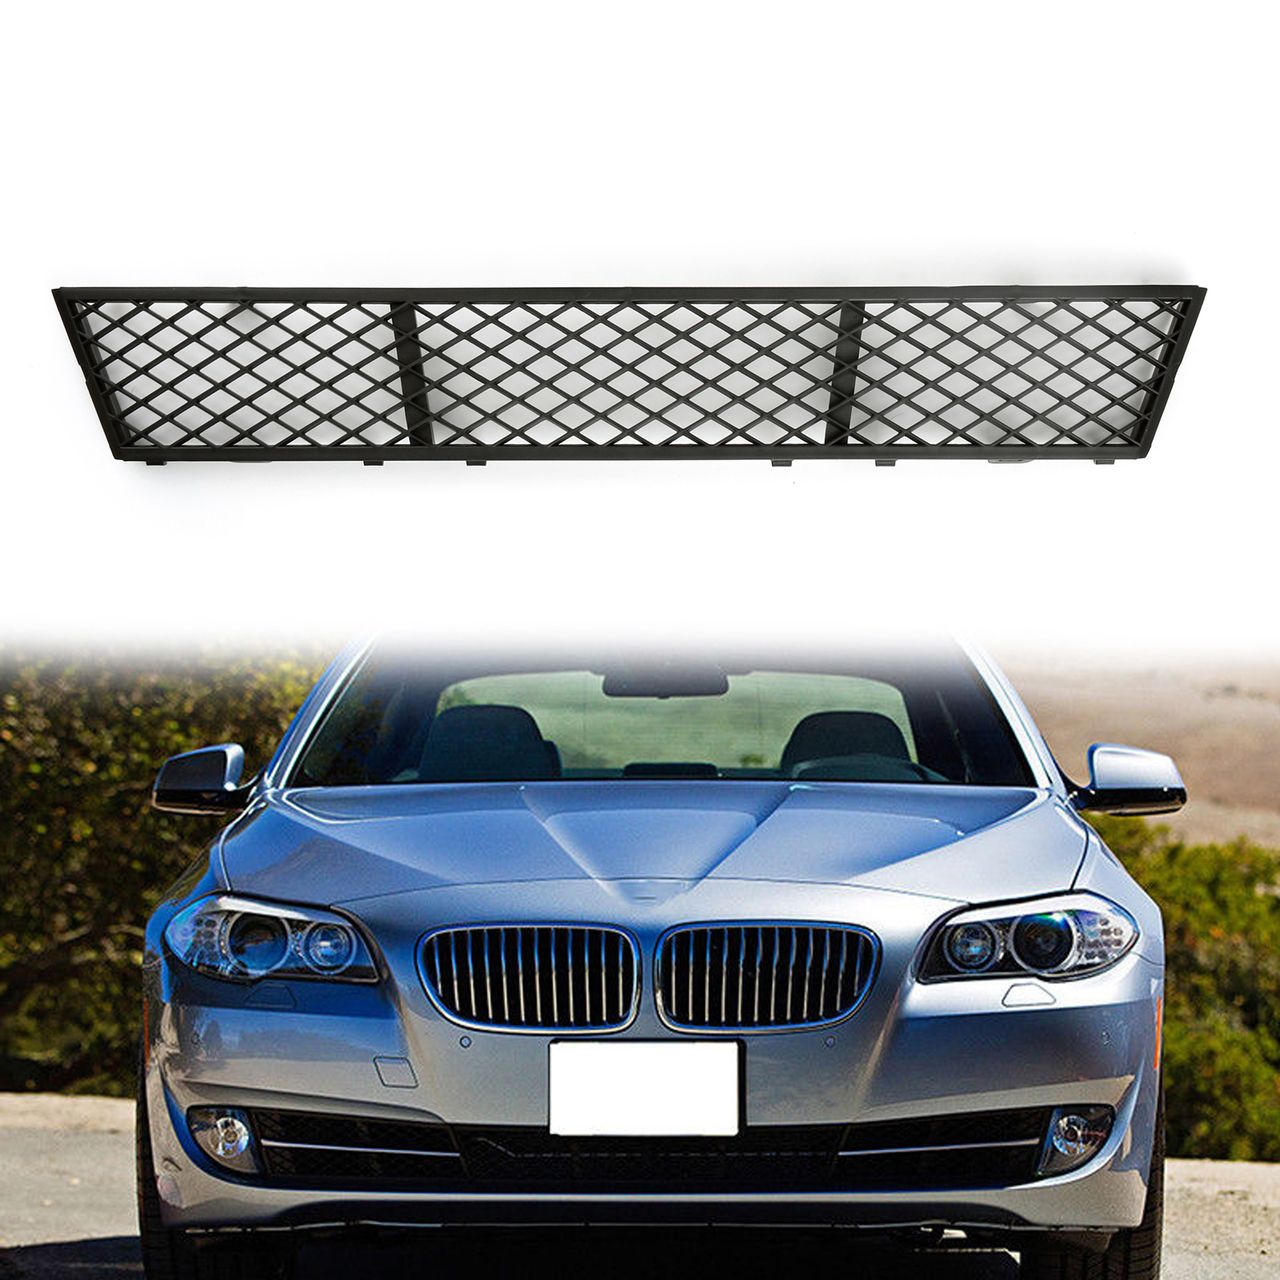 Mad Hornets Front Bumper Center Lower Grille Assembly Bmw F10 5 Series Sedan 4 Door 51117285950 20 99 Http Www Madhornets Com Front Bu Bmw Sedan Grilles